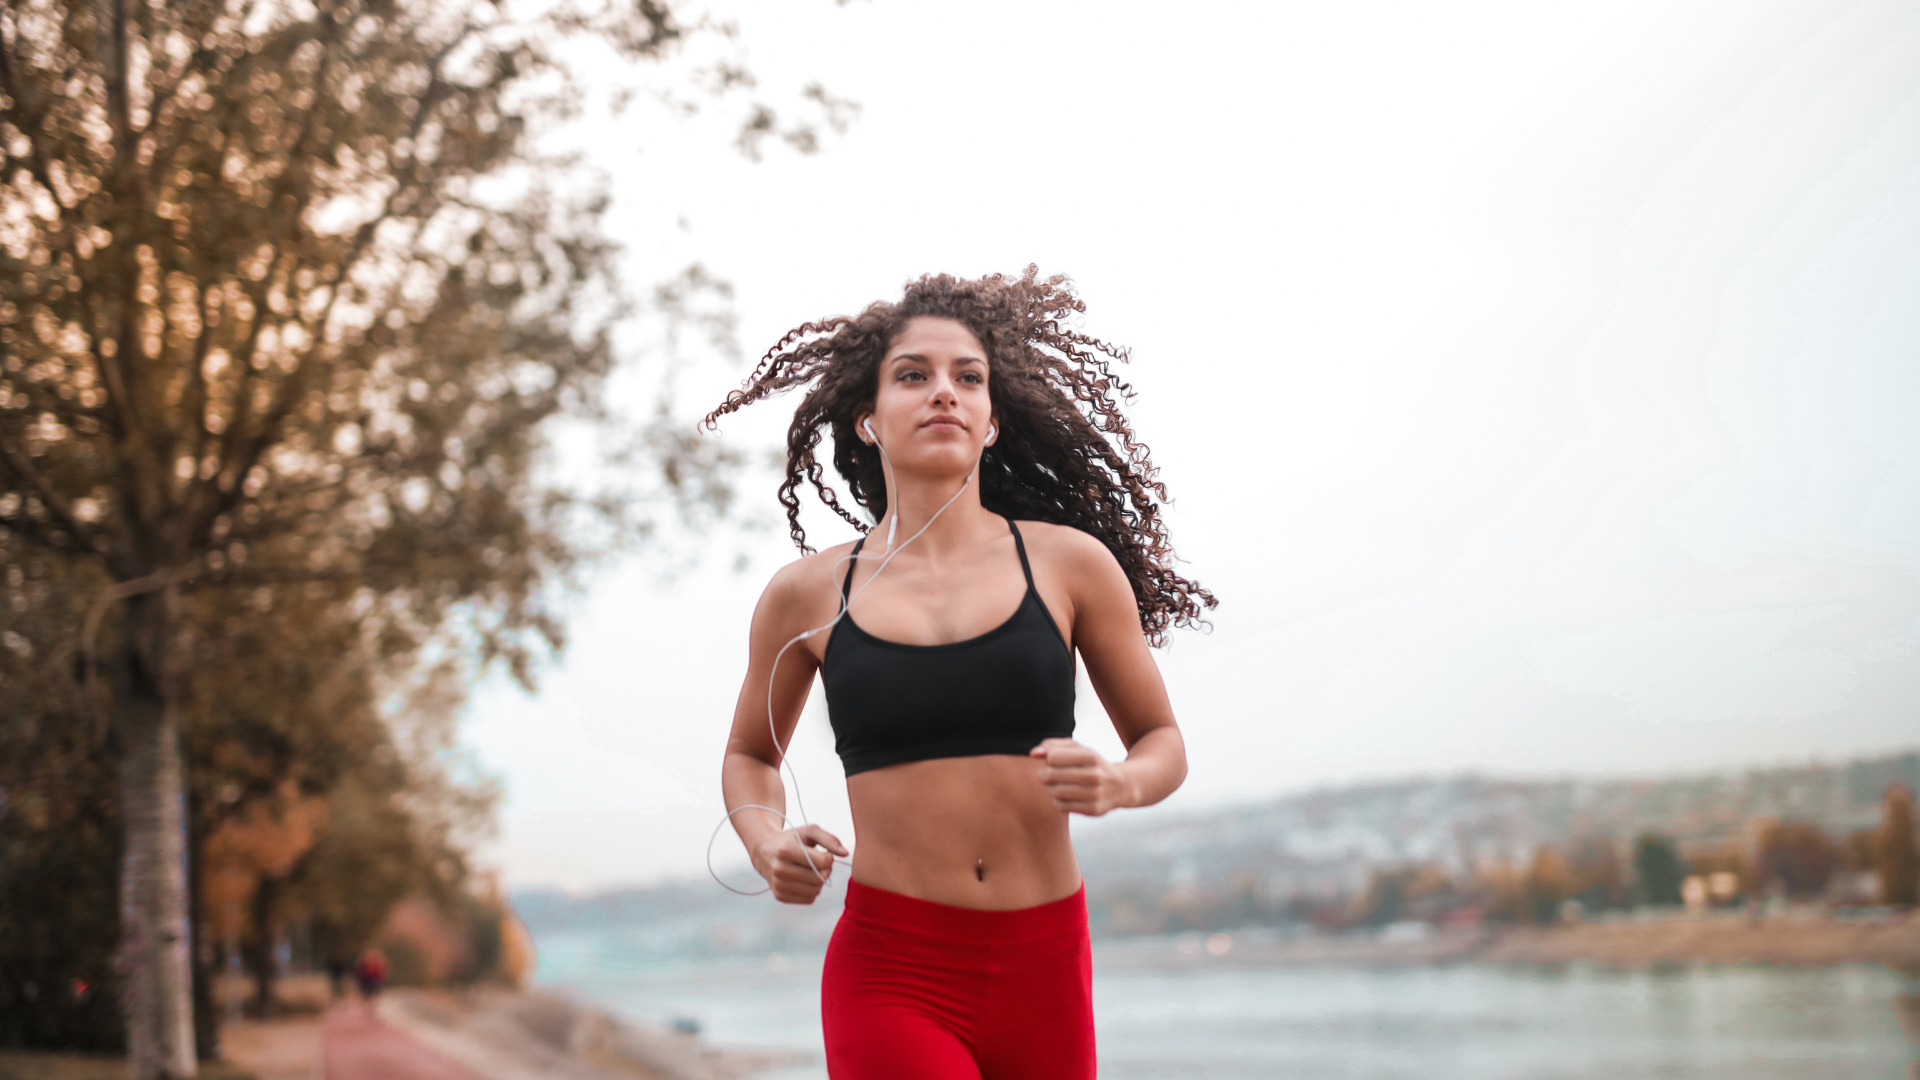 An individual running with headphones in